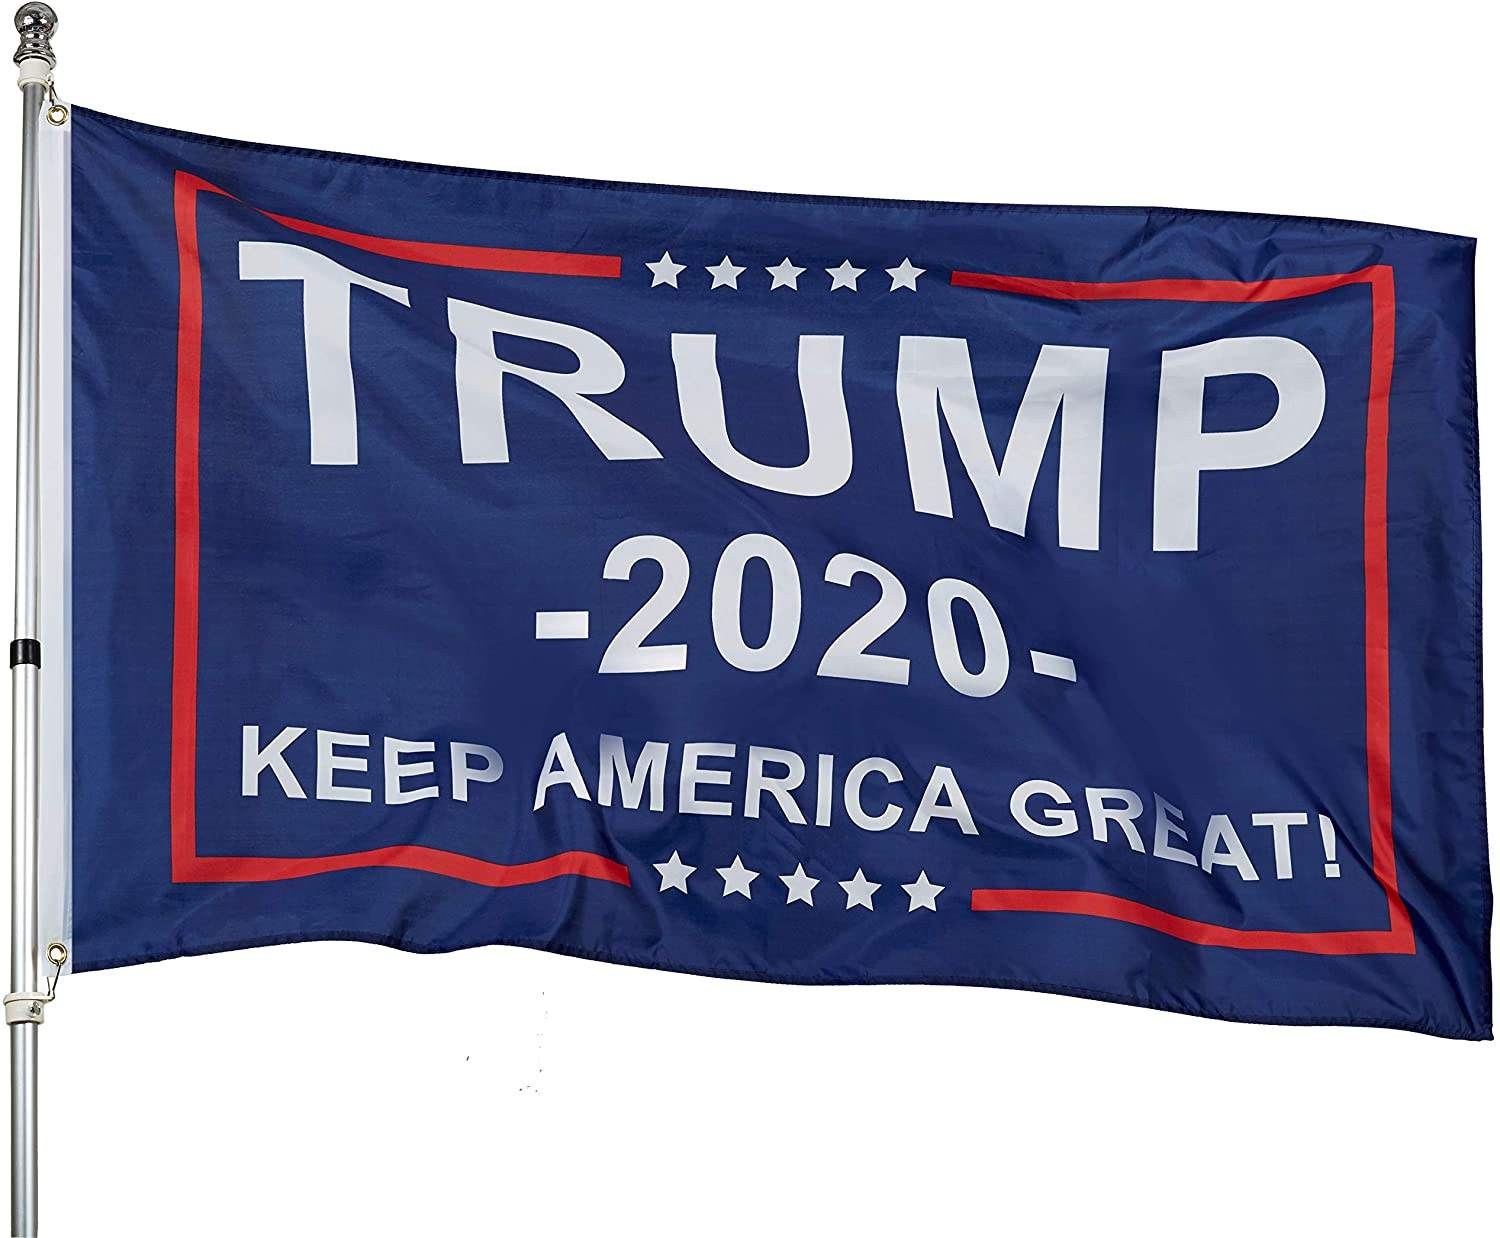 Trump for President 2020 Keep America Great Flag 3x5 Feet with Grommets